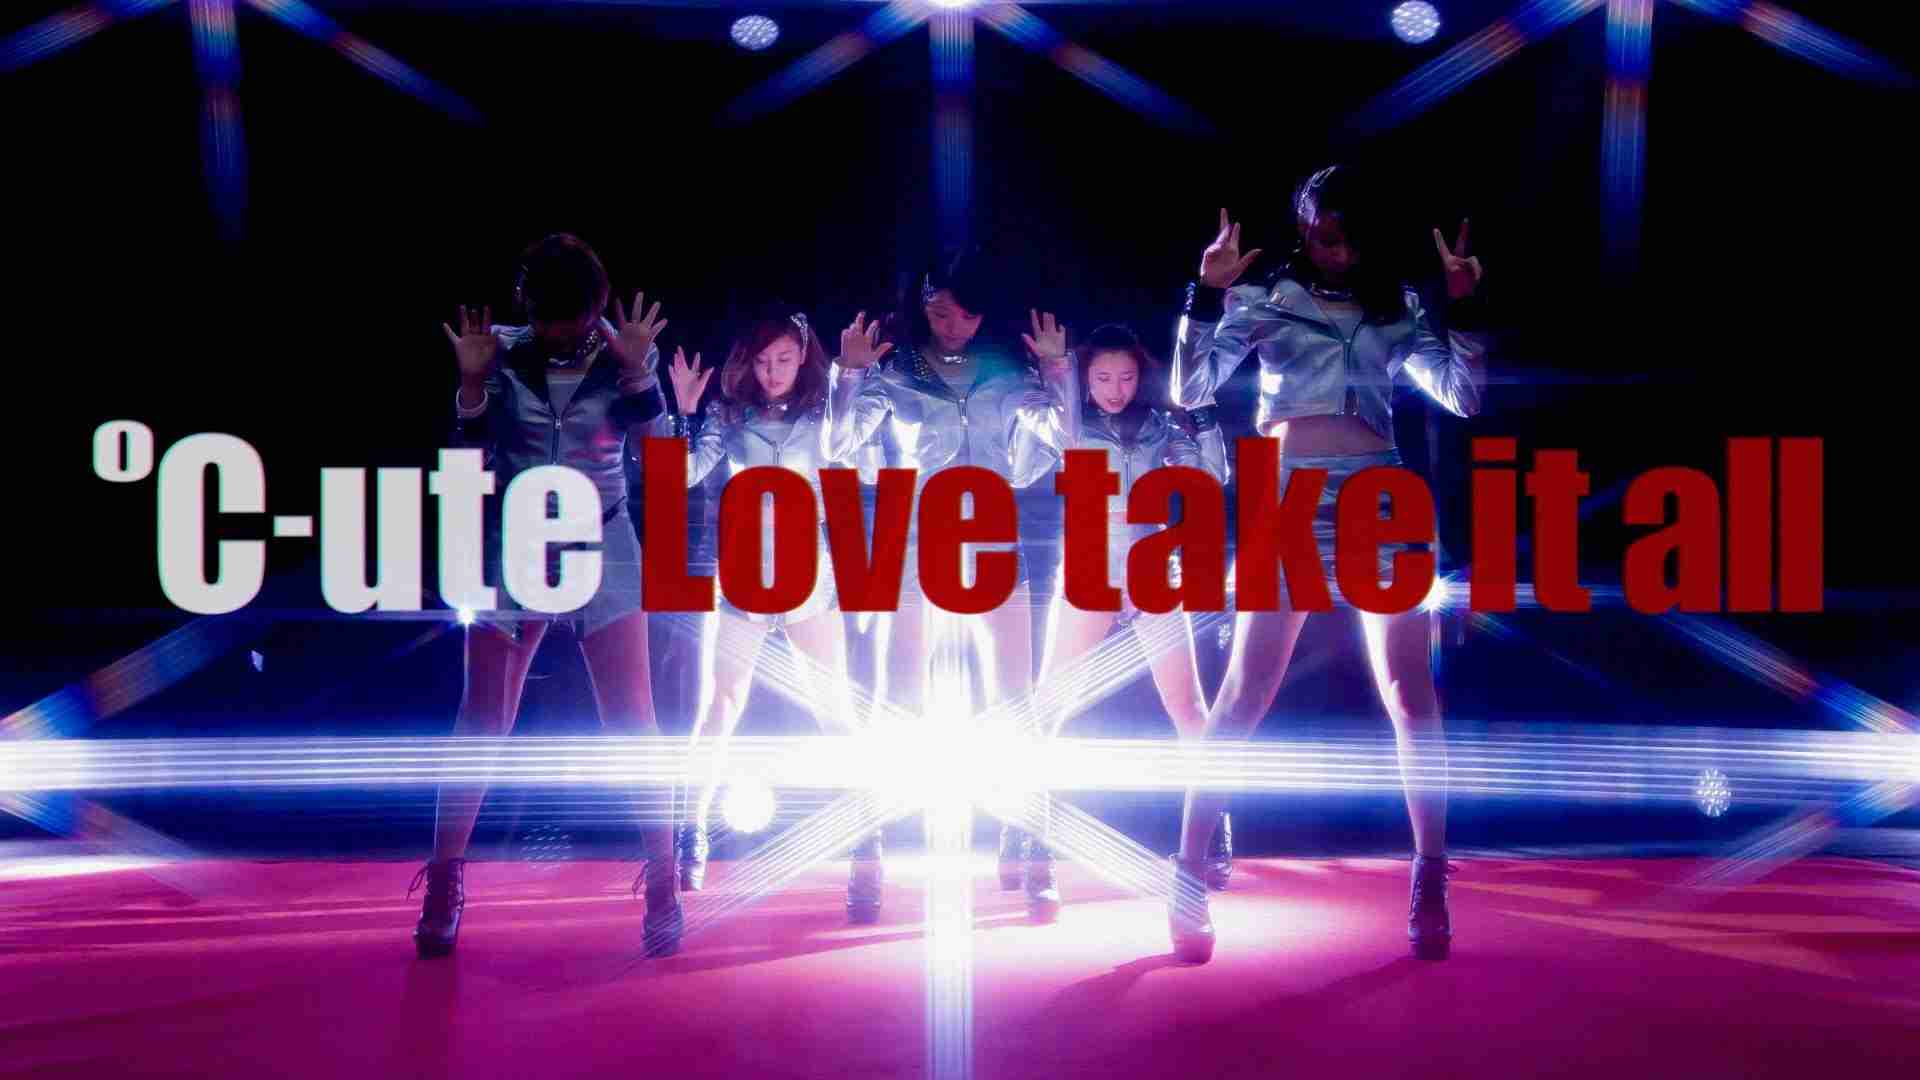 ℃-ute 『Love take it all』 (Dance Shot Ver.) - YouTube